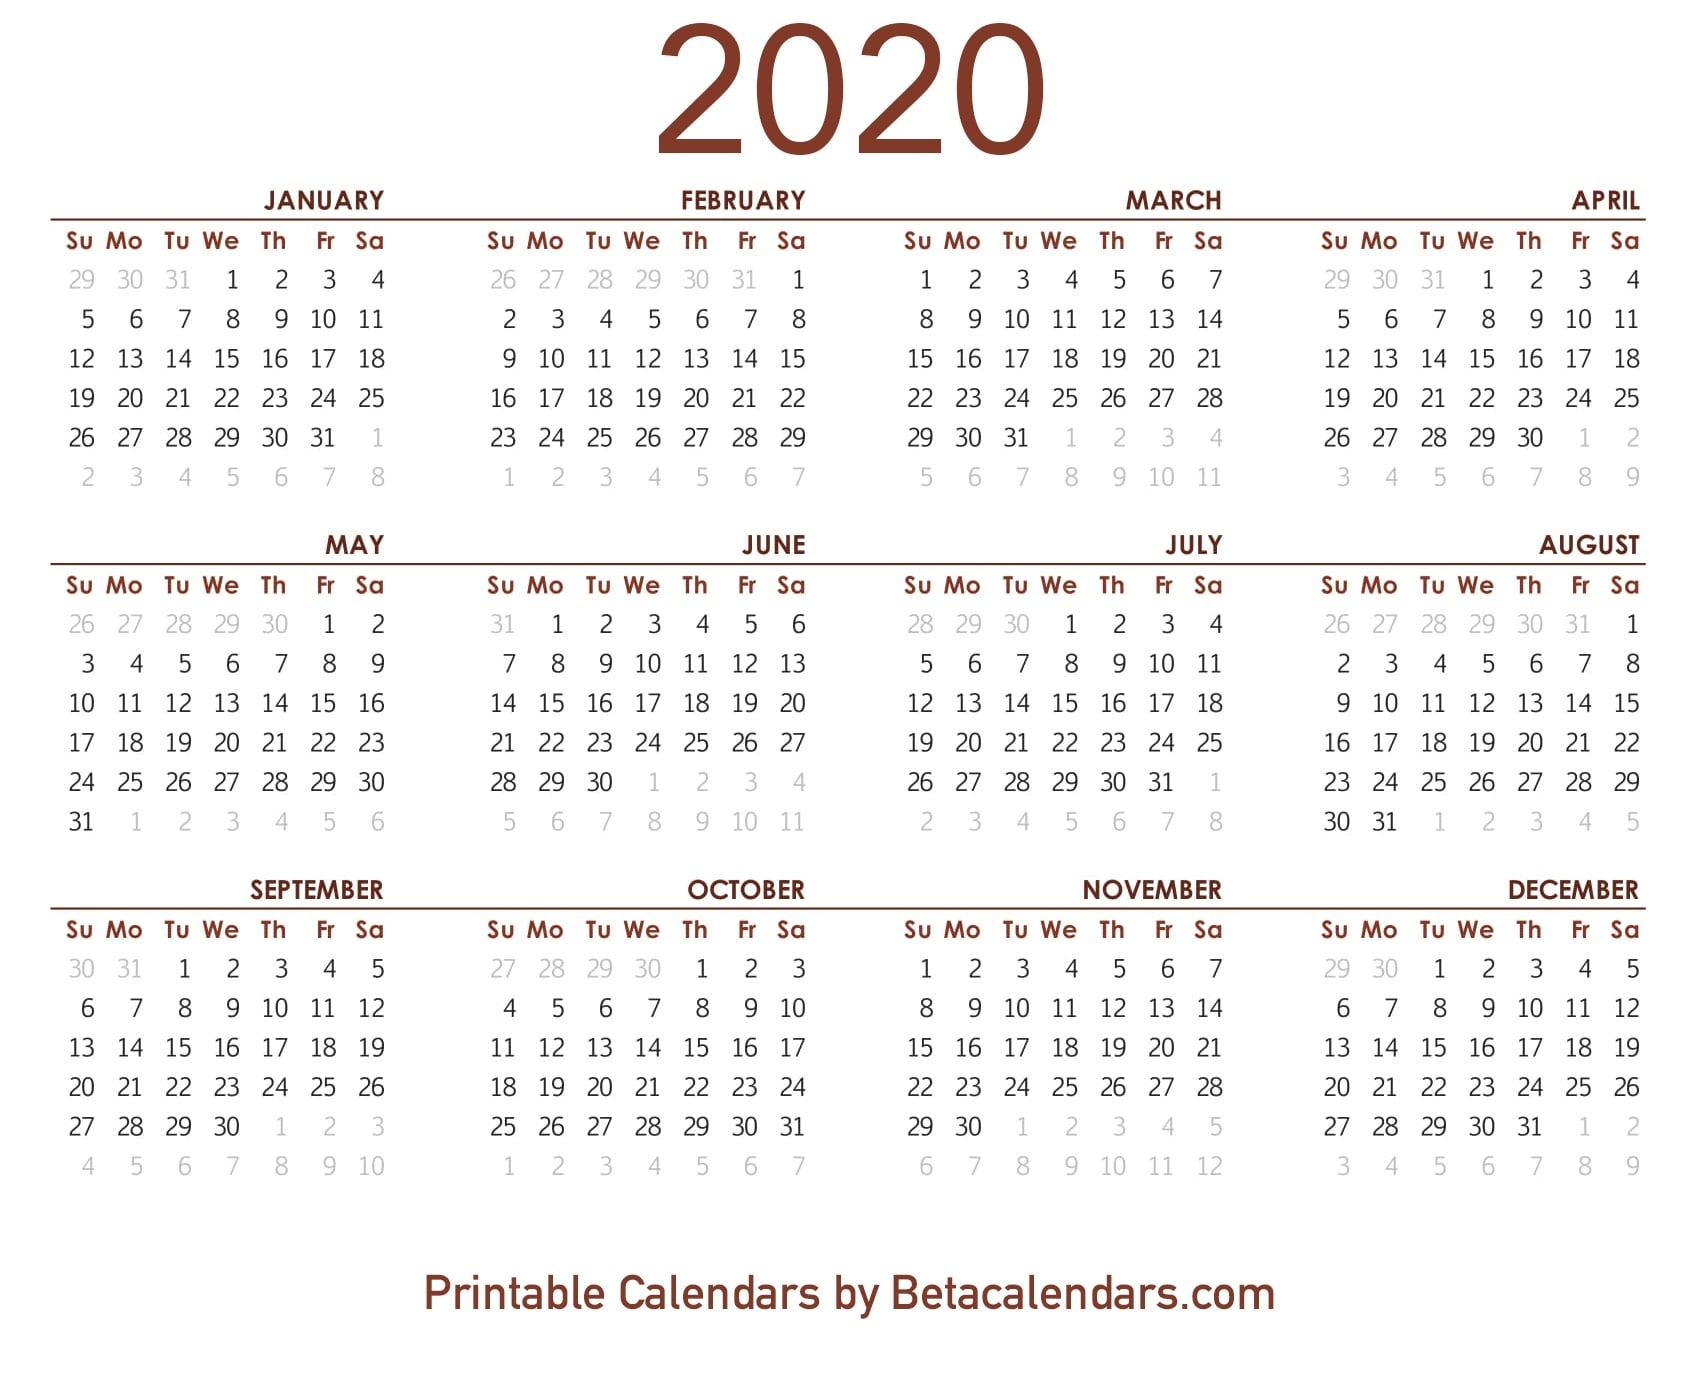 2020 Calendar - Free Printable Yearly Calendar 2020 Year Calendar 2020 Printable